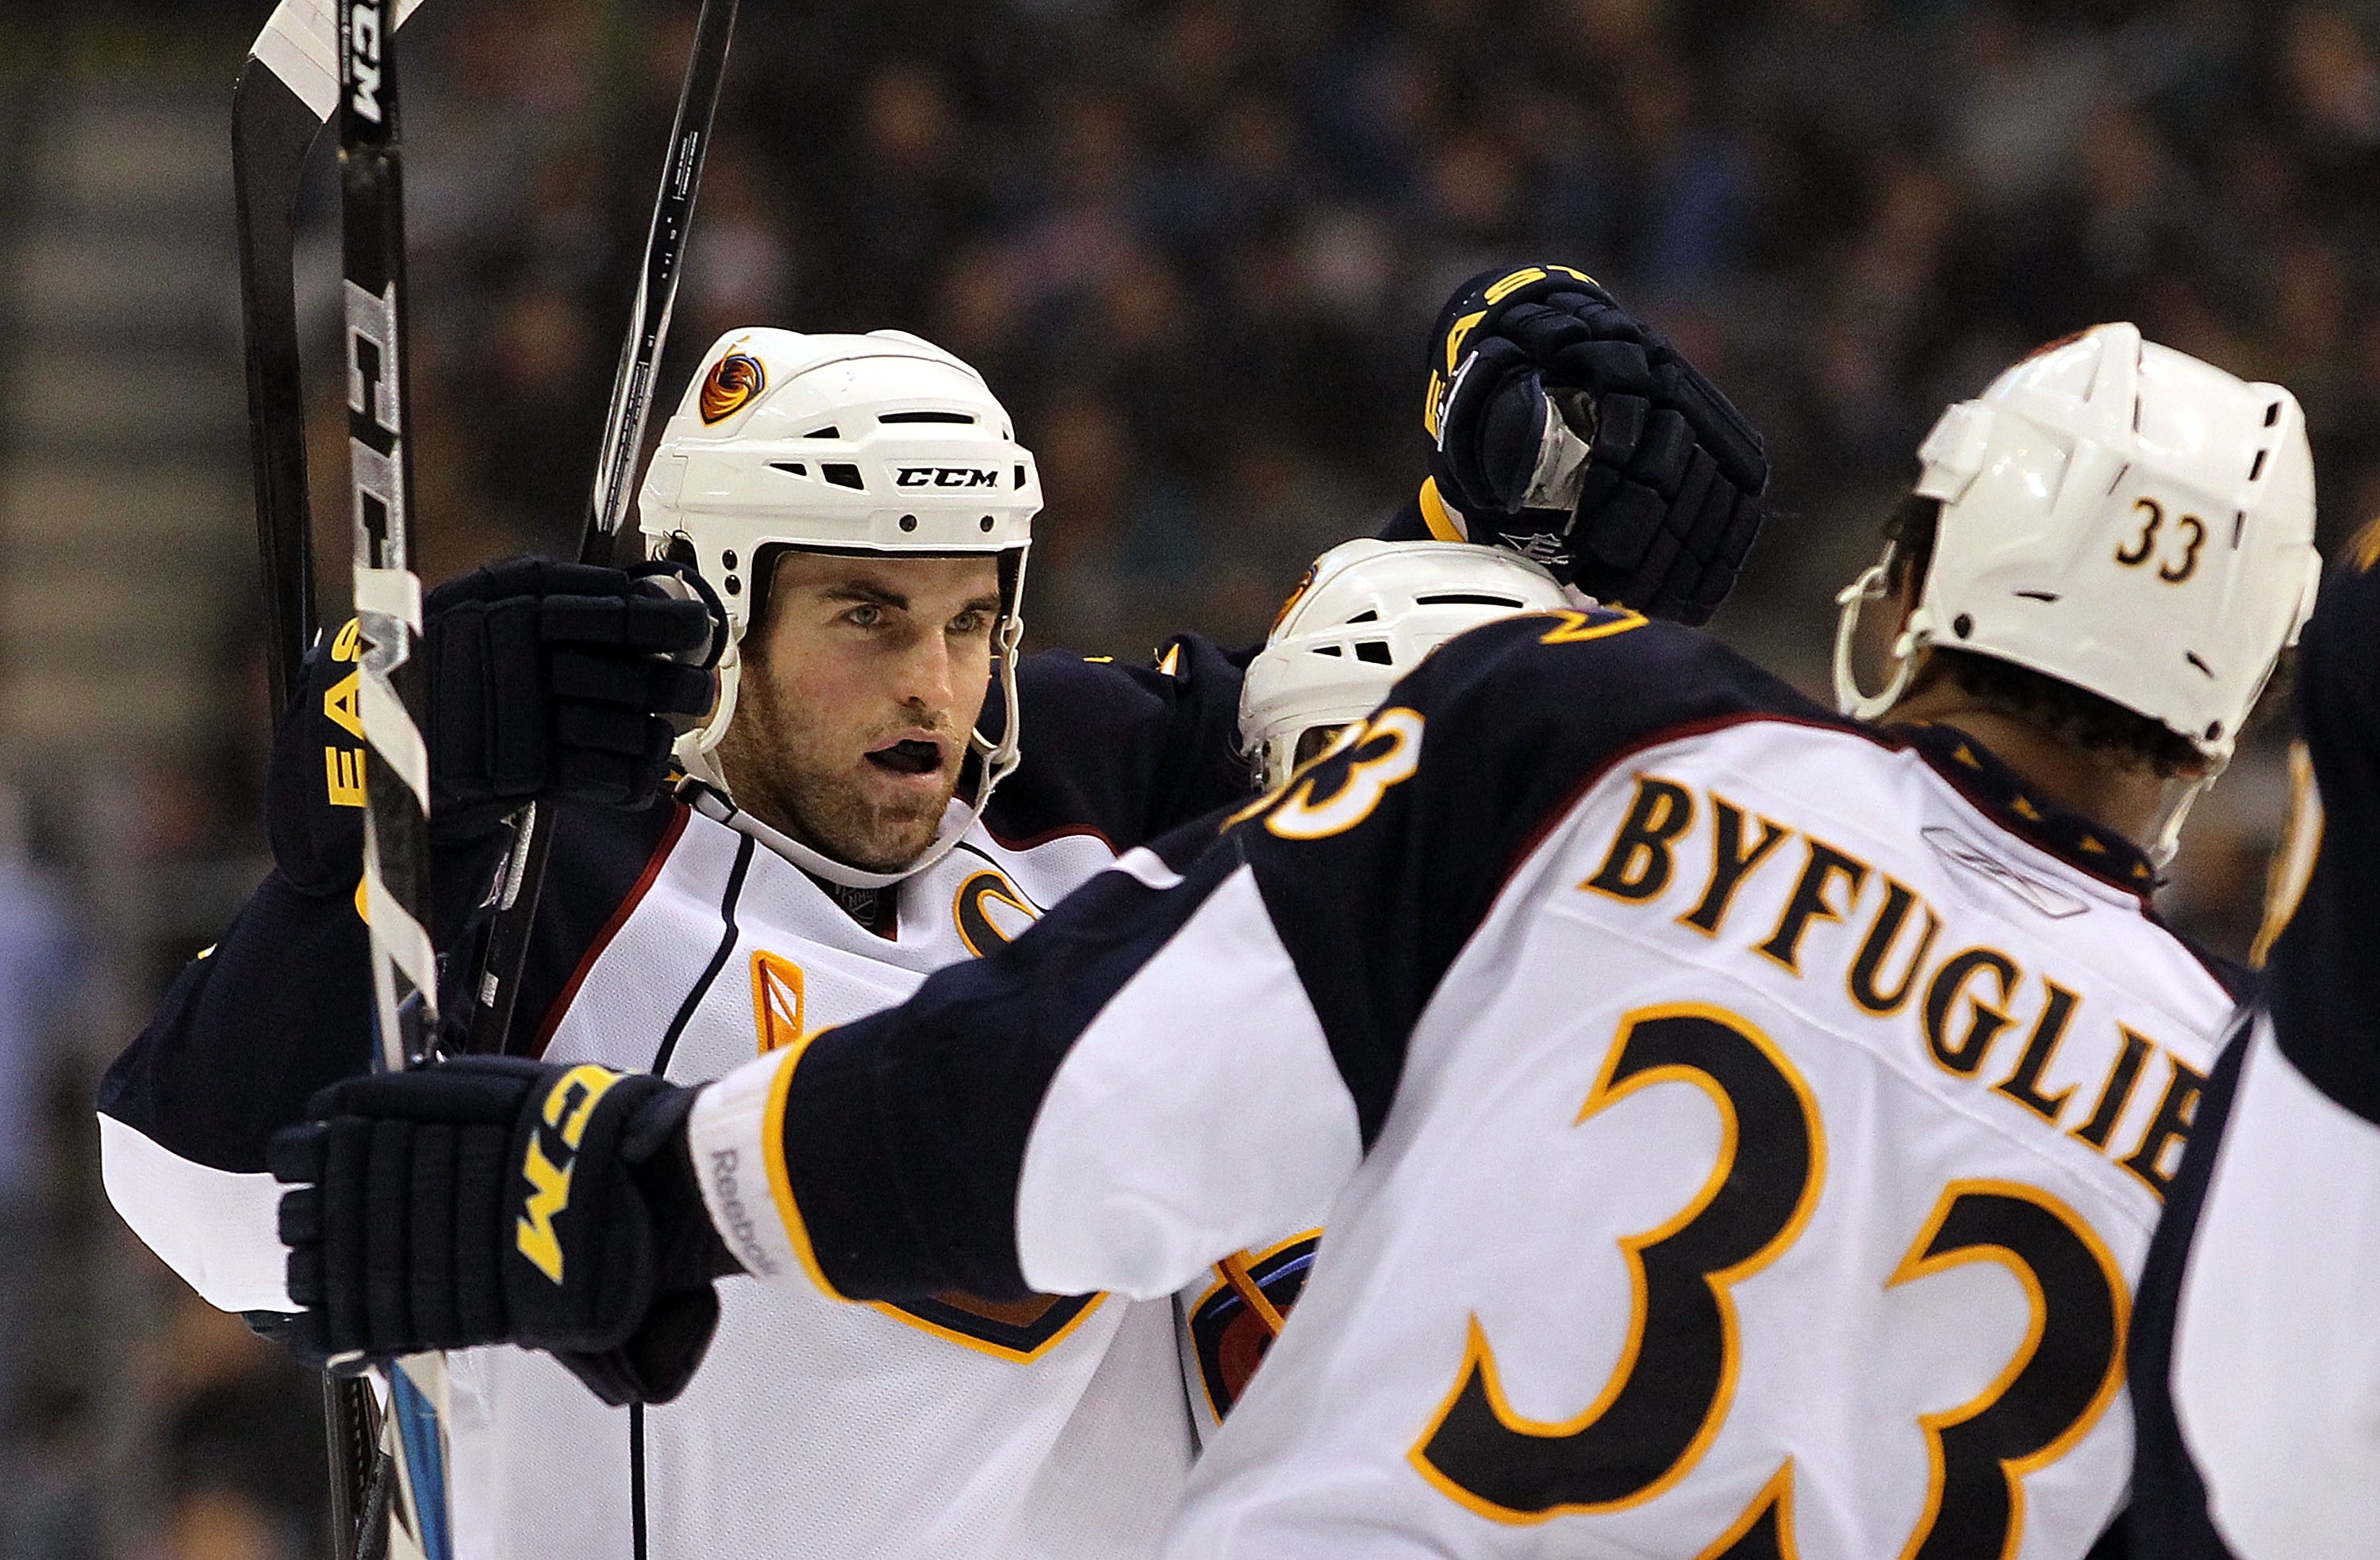 DALLAS, TX - JANUARY 15:  Andrew Ladd #16 celebrates his goal with Dustin Byfuglien #3 of the Atlanta Thrashers during play against the Dallas Stars at American Airlines Center on January 15, 2011 in Dallas, Texas.  (Photo by Ronald Martinez/Getty Images)